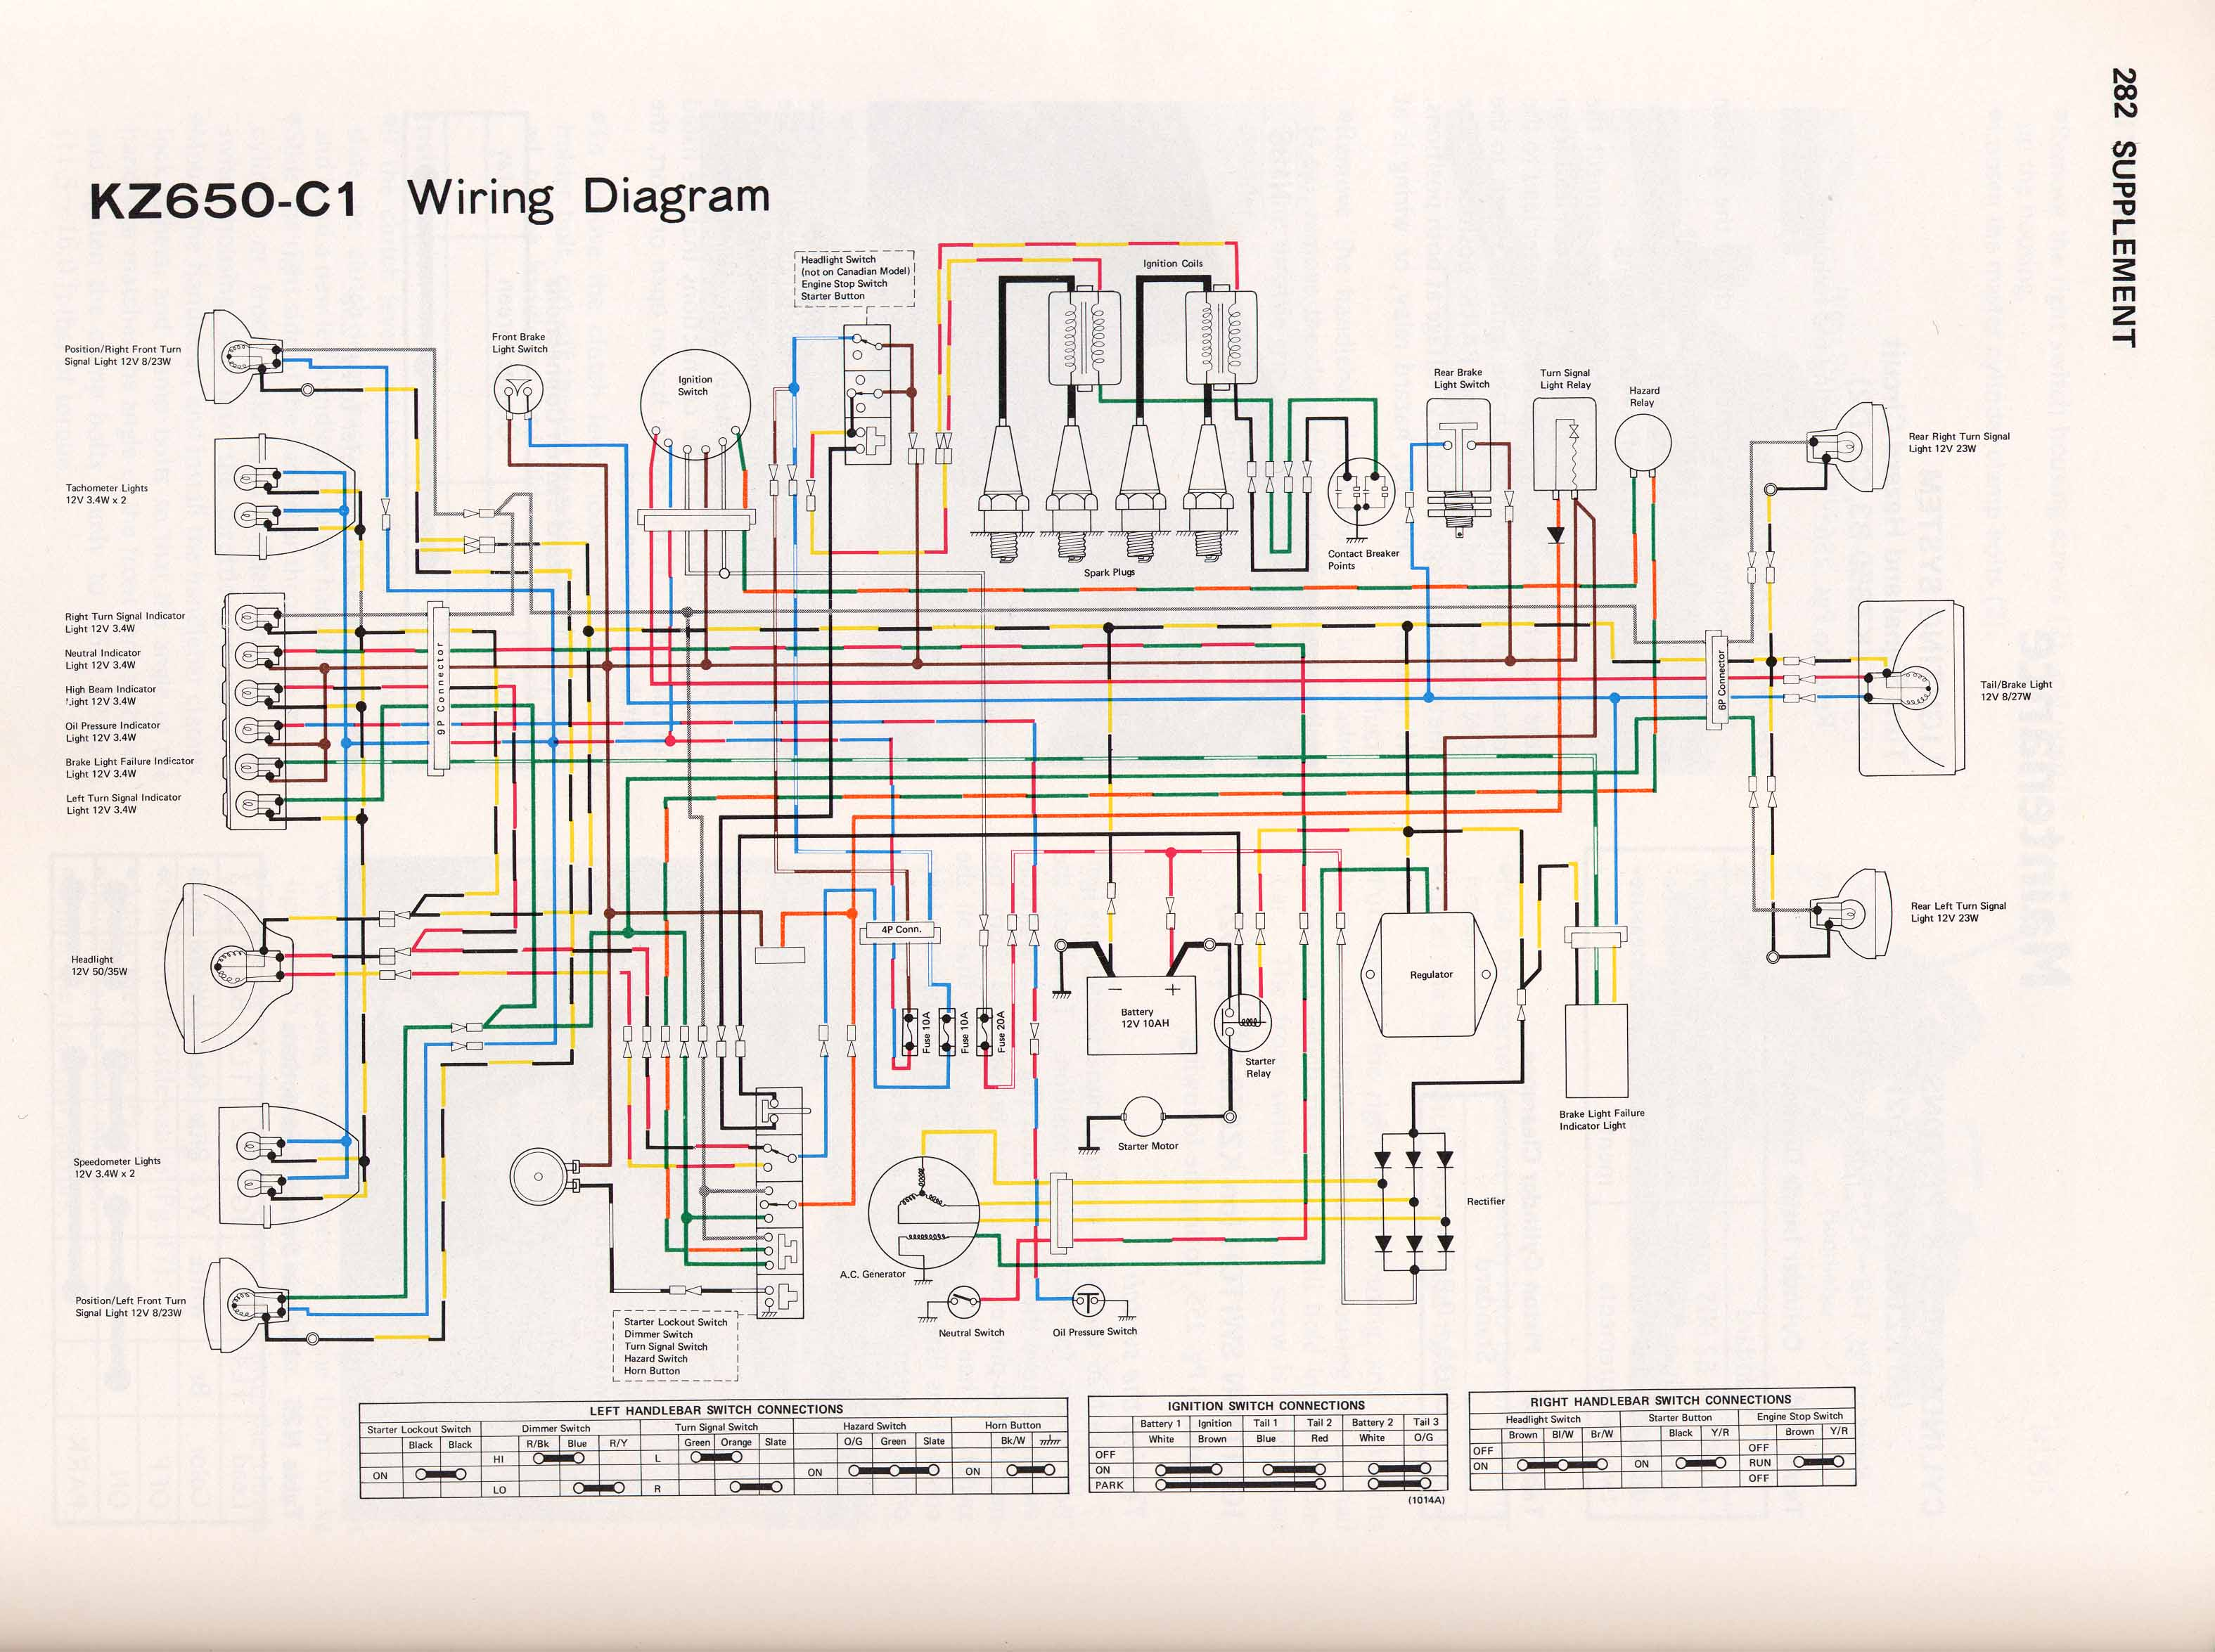 KZ650 C1 kz650 info wiring diagrams gs750 wiring diagram at bayanpartner.co